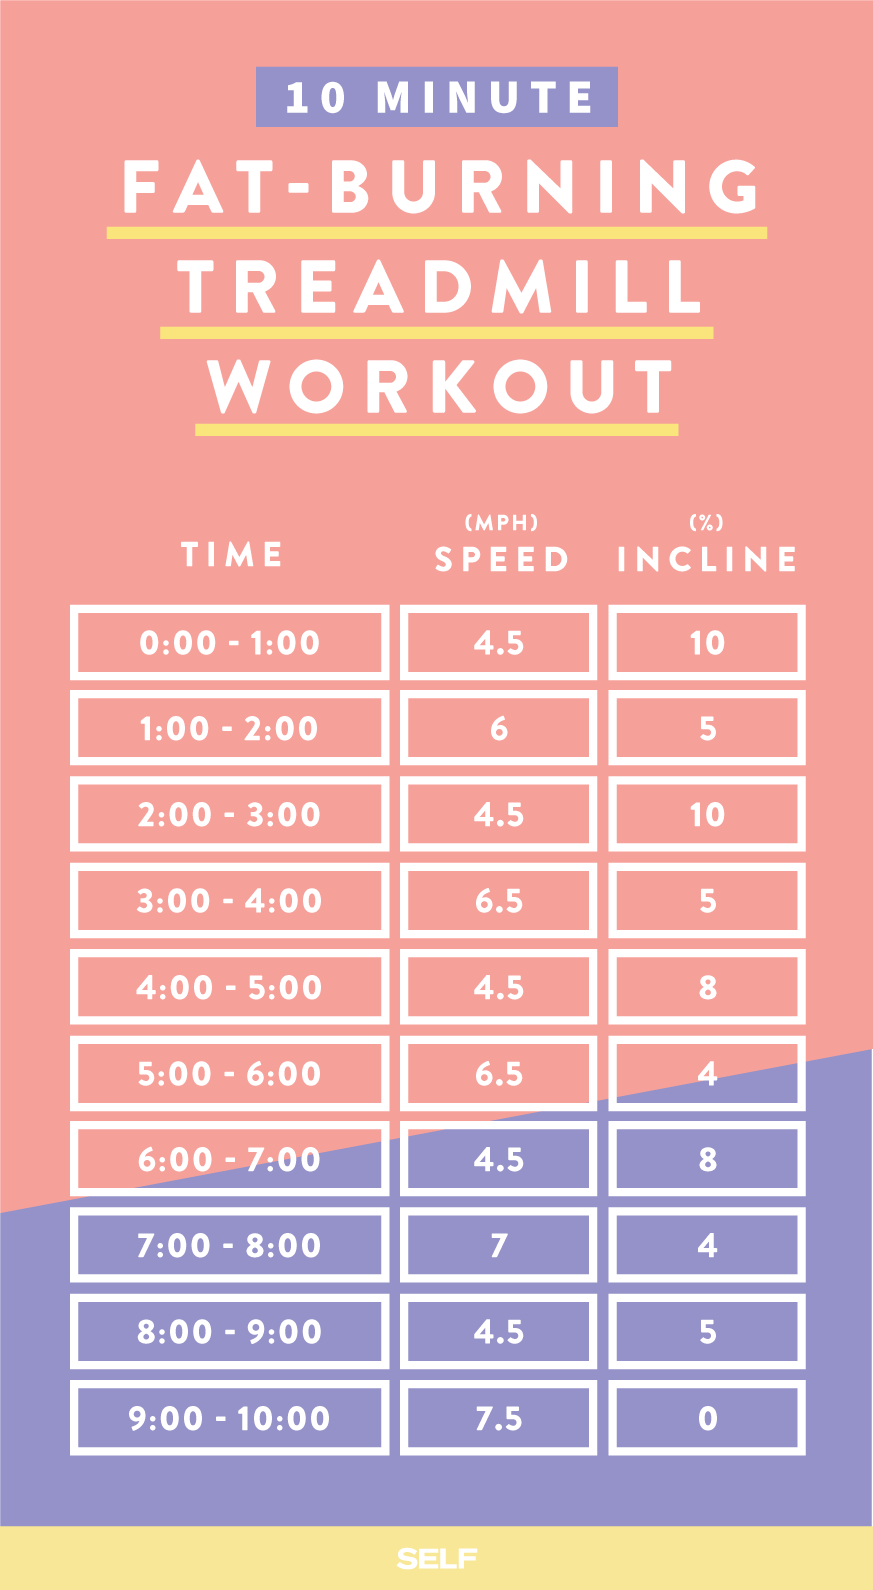 10 Minute Fat Burning Treadmill Workout